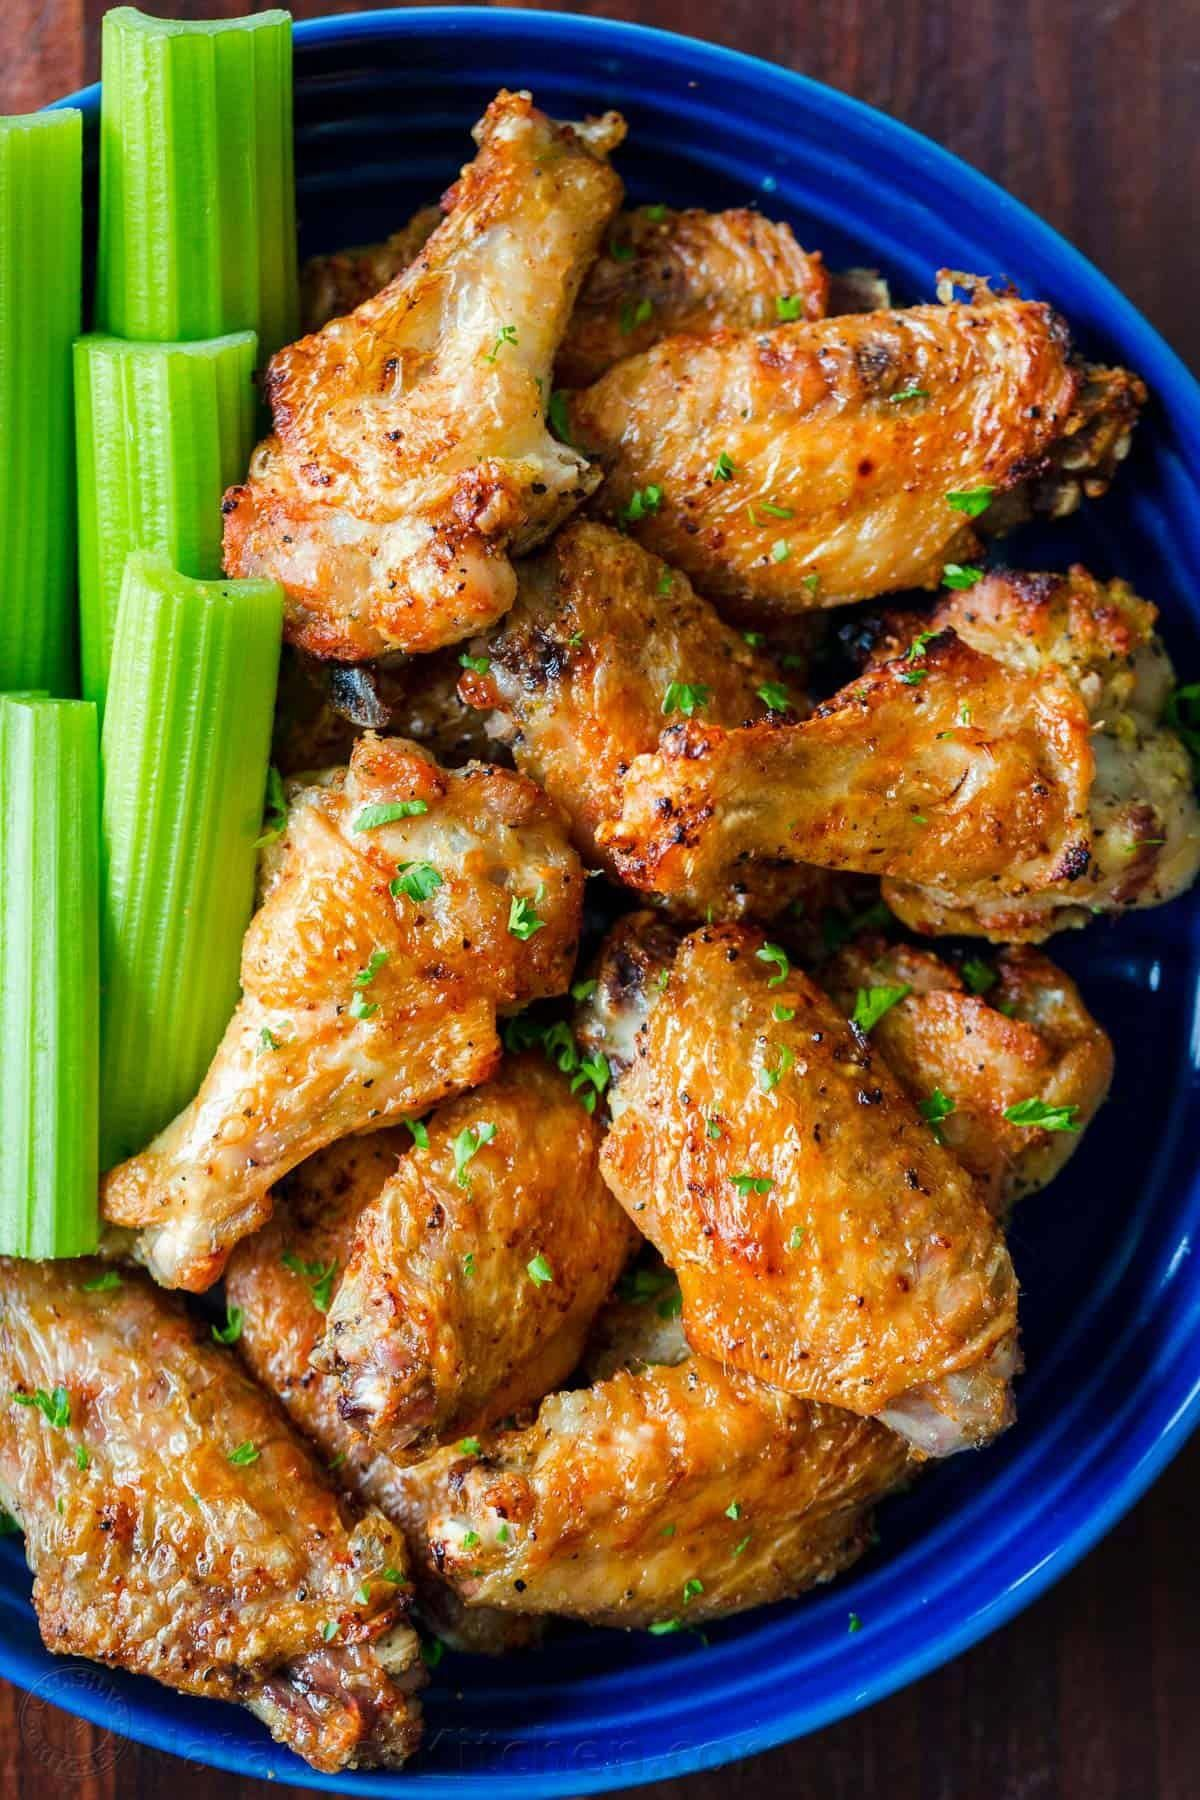 Pin by Brenda Snider on Air fryer recipes (With images